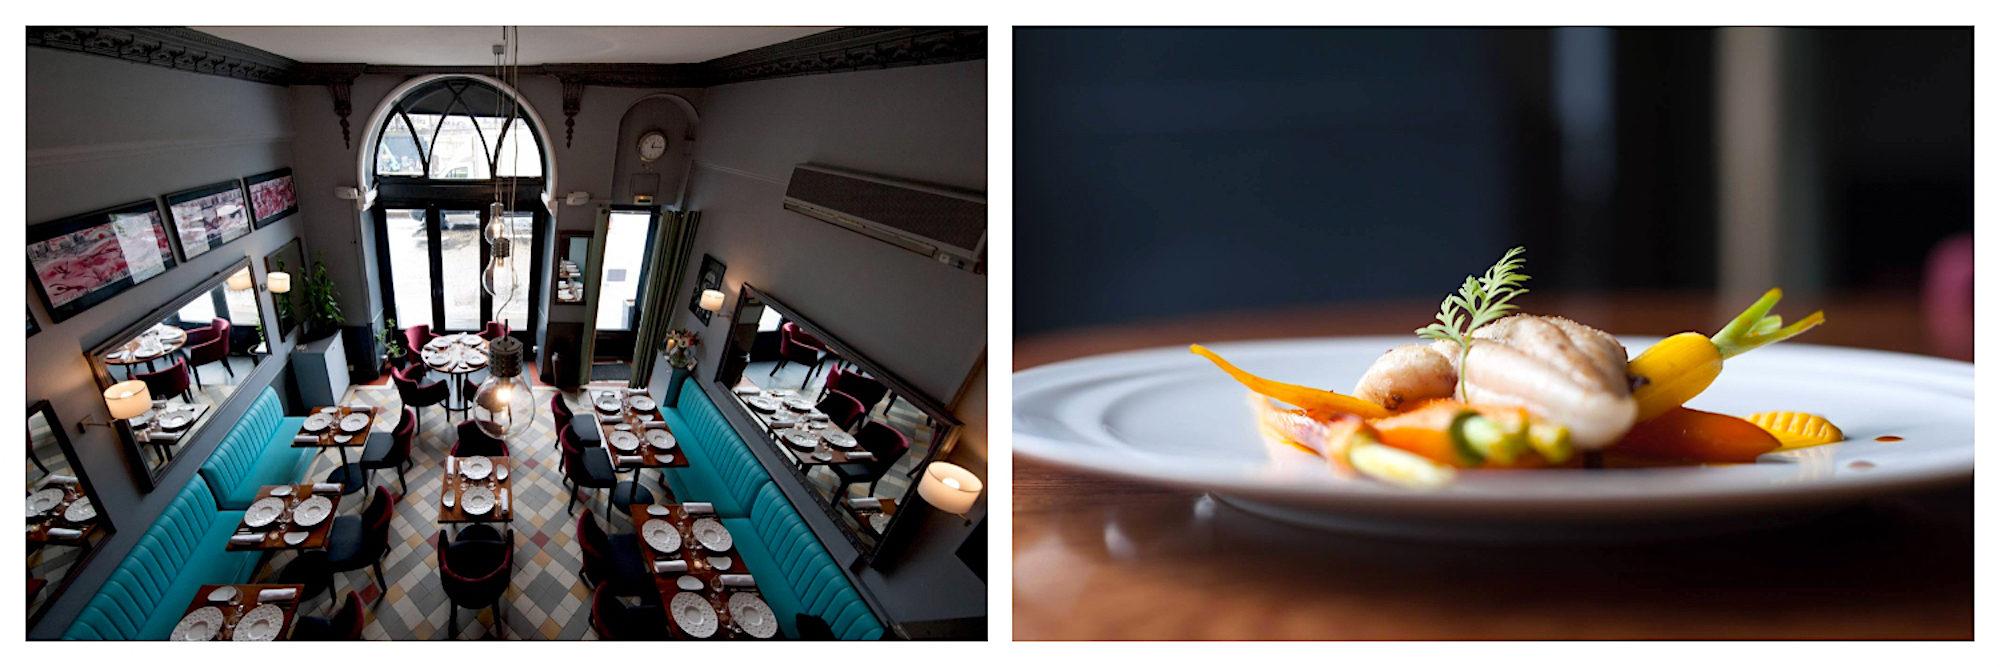 Sequana restaurant, with its sleek, modern interiors (left) and delicious fare like fresh monkfish with carrots (right), is one of our favorite spots to eat near Notre Dame Cathedral in Paris